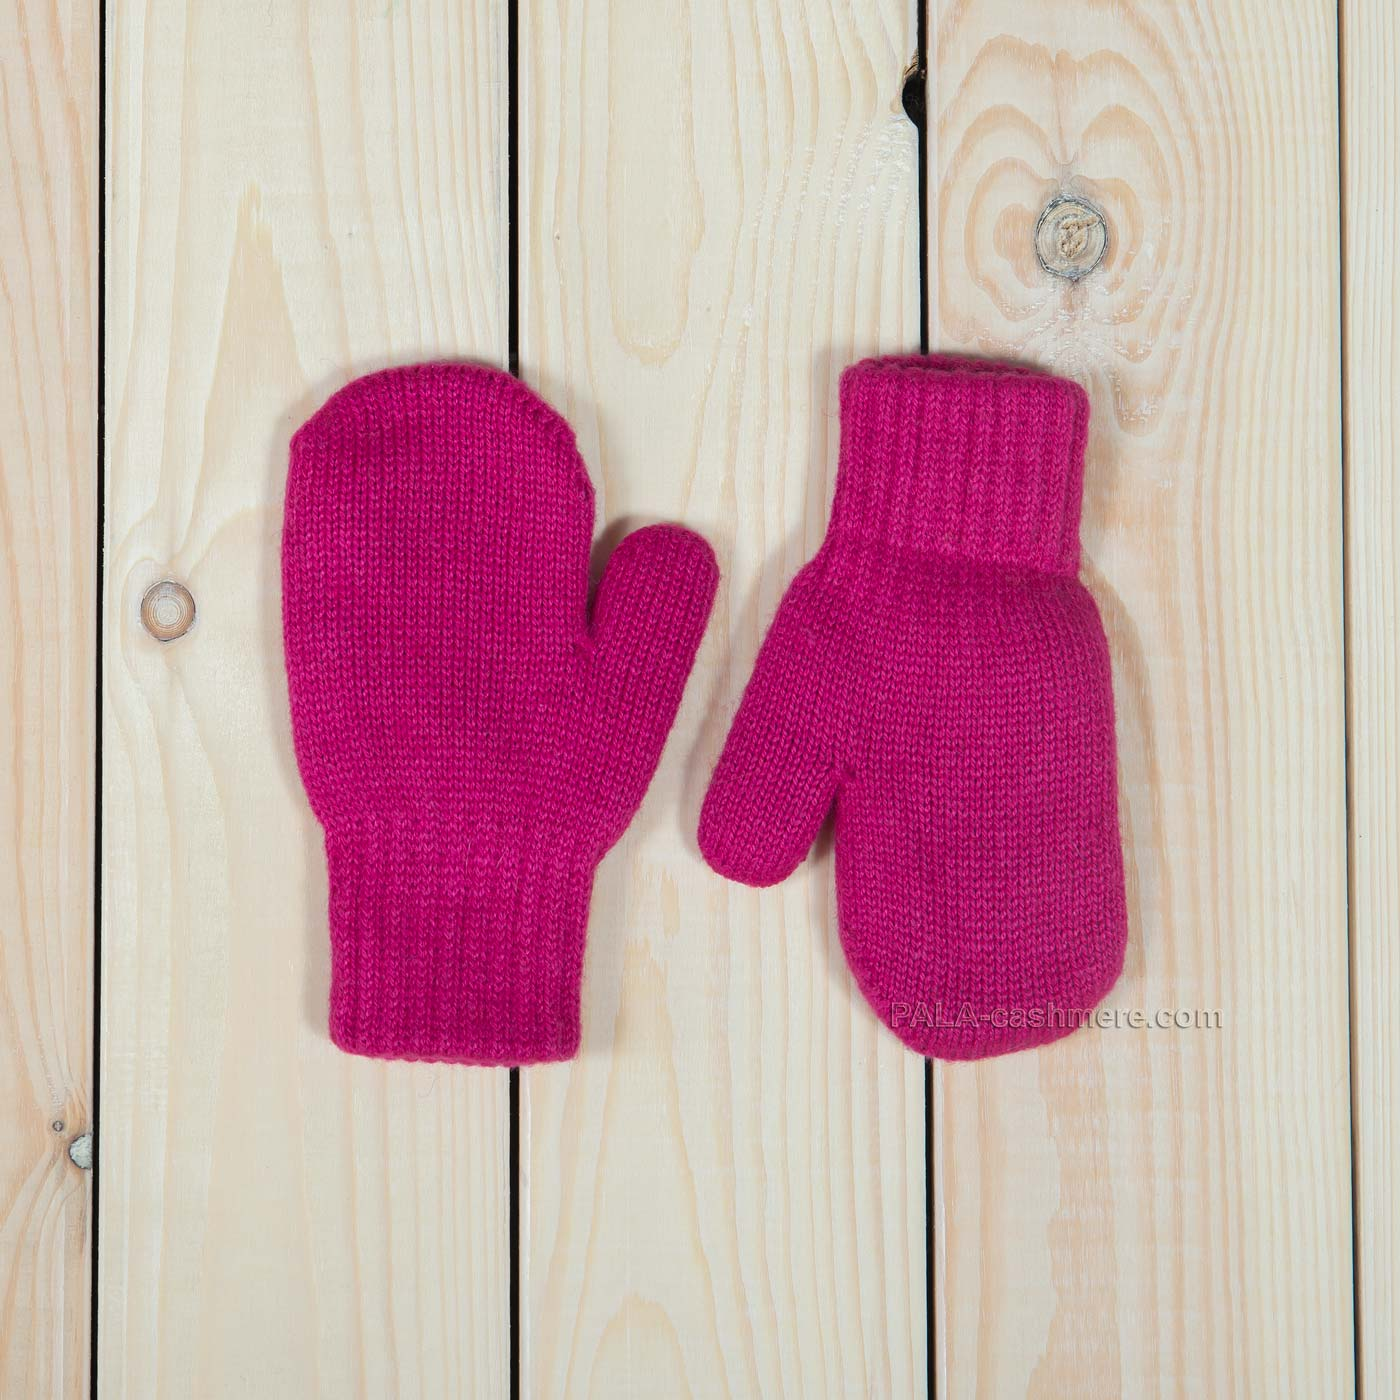 Mittens of lamb wool for children